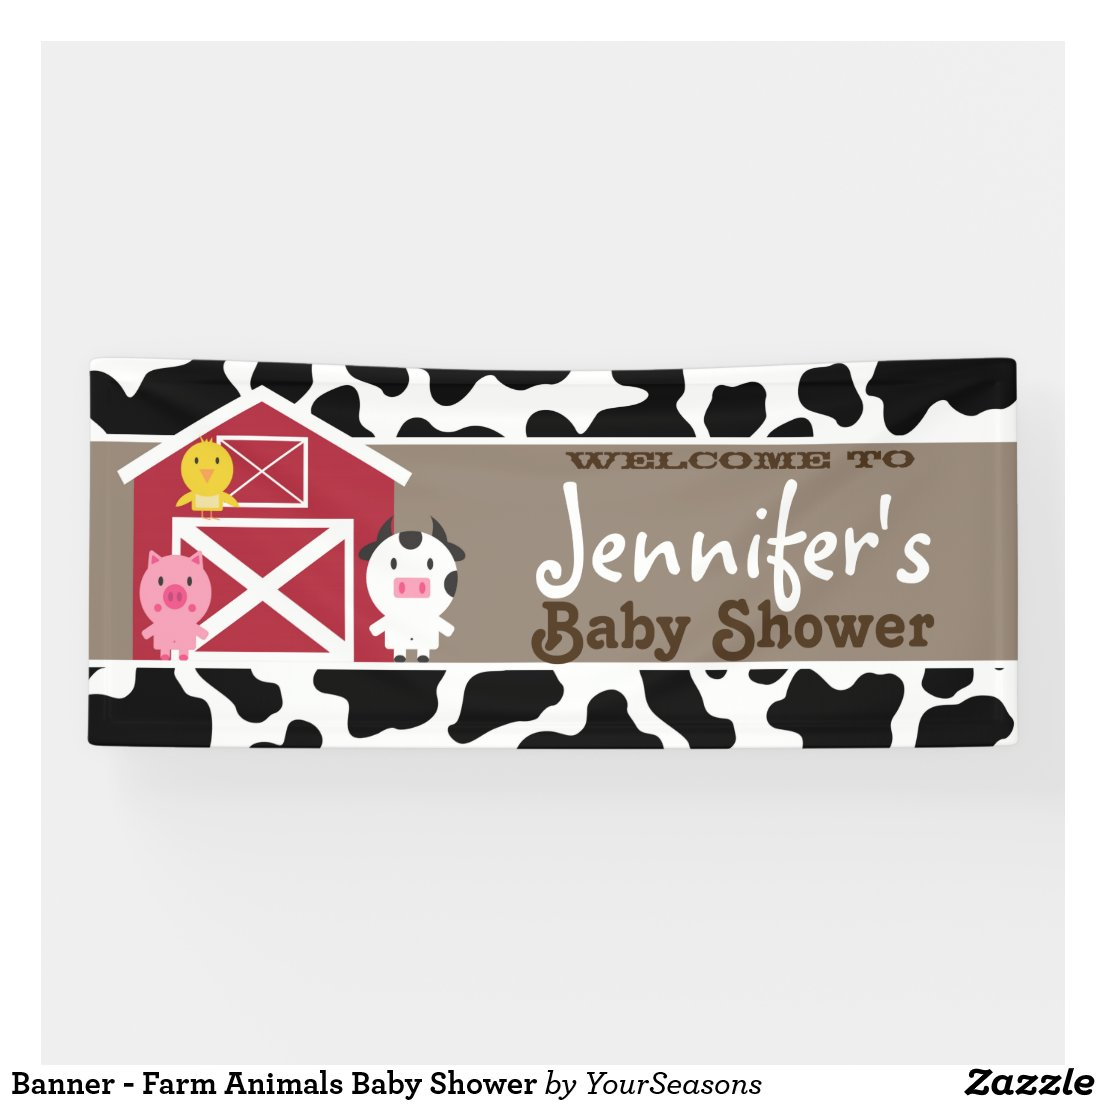 Banner - Farm Animals Baby Shower